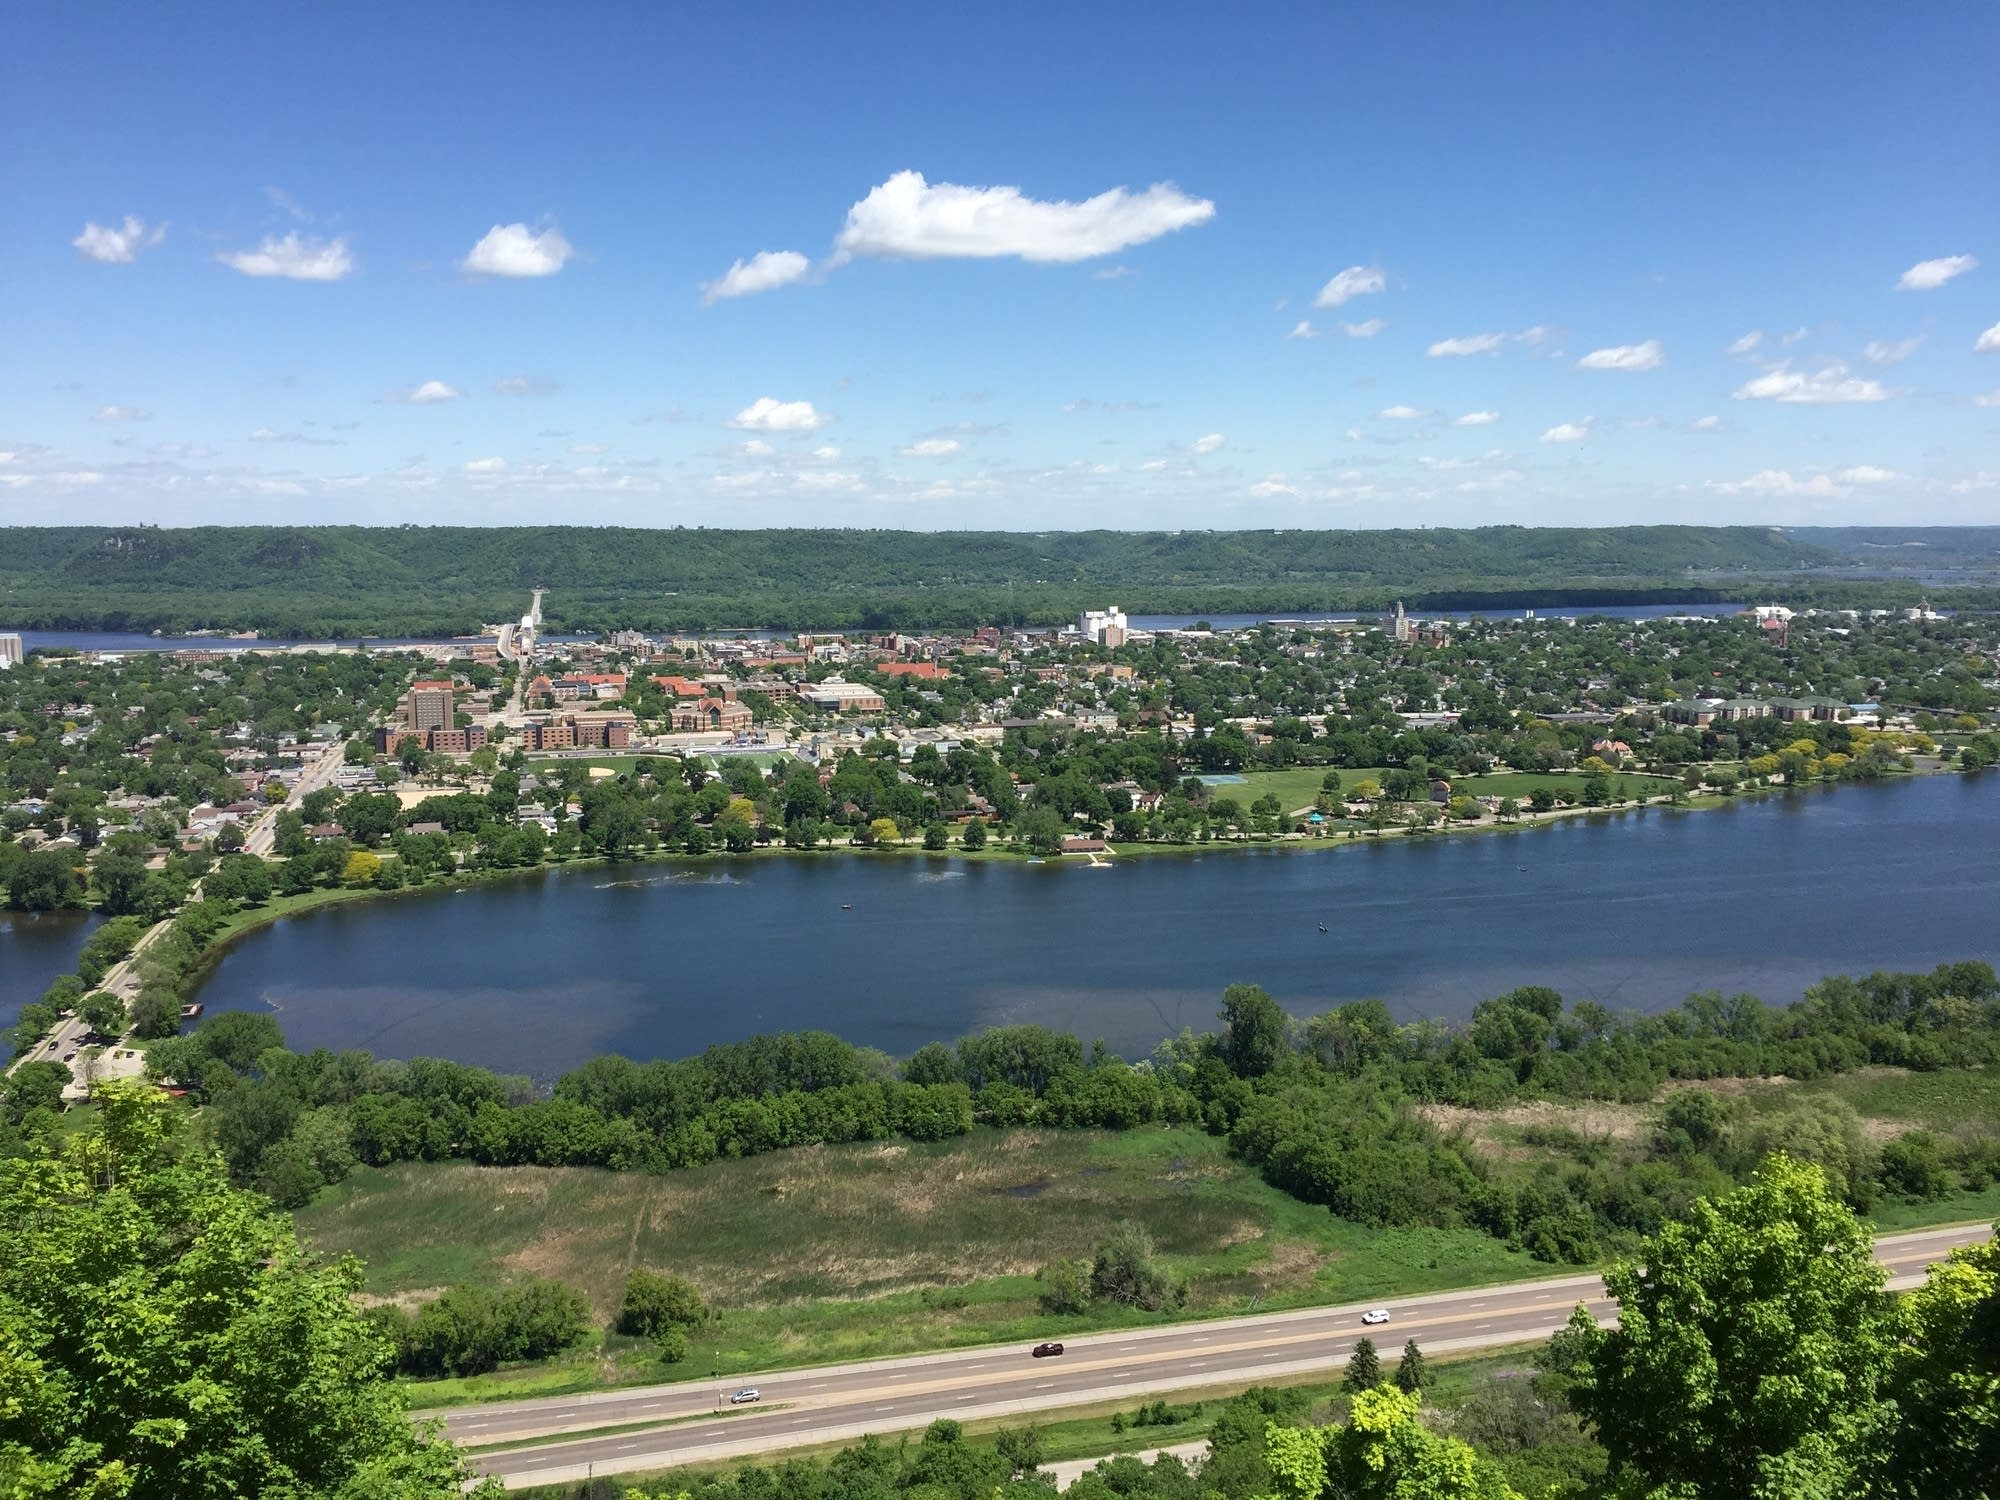 Scenic overview of Winona, Minnesota